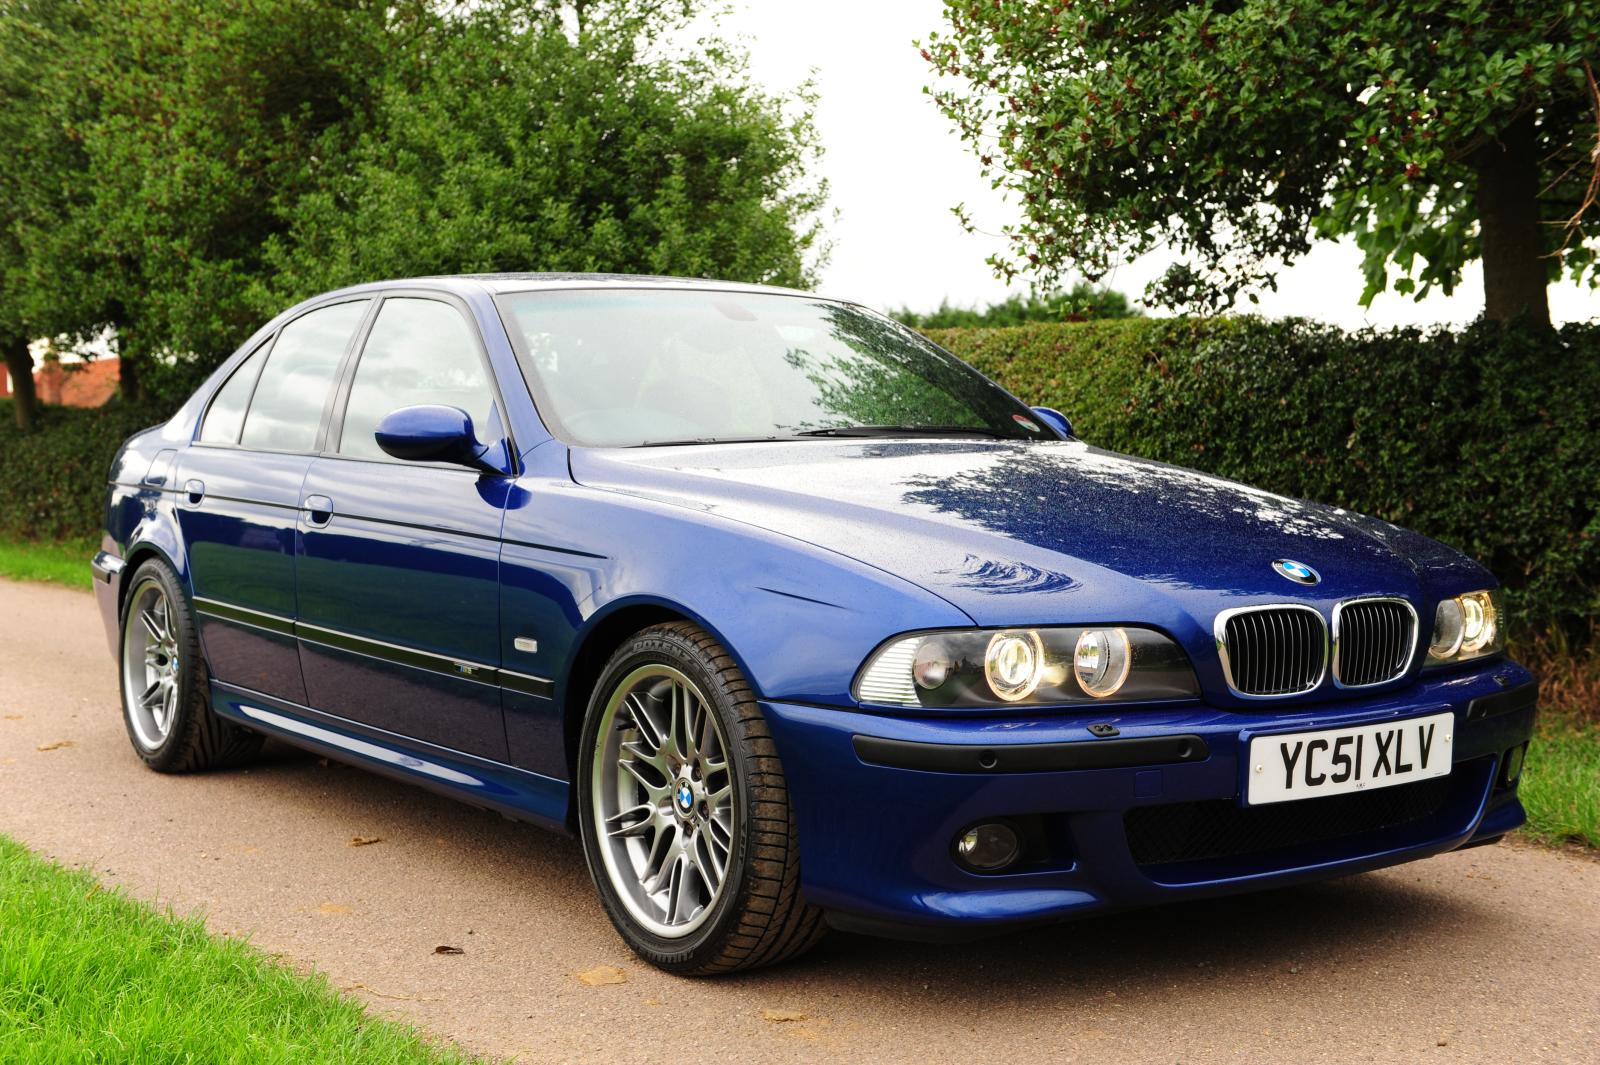 file bmw m5 e39 blue jpg wikipedia. Black Bedroom Furniture Sets. Home Design Ideas